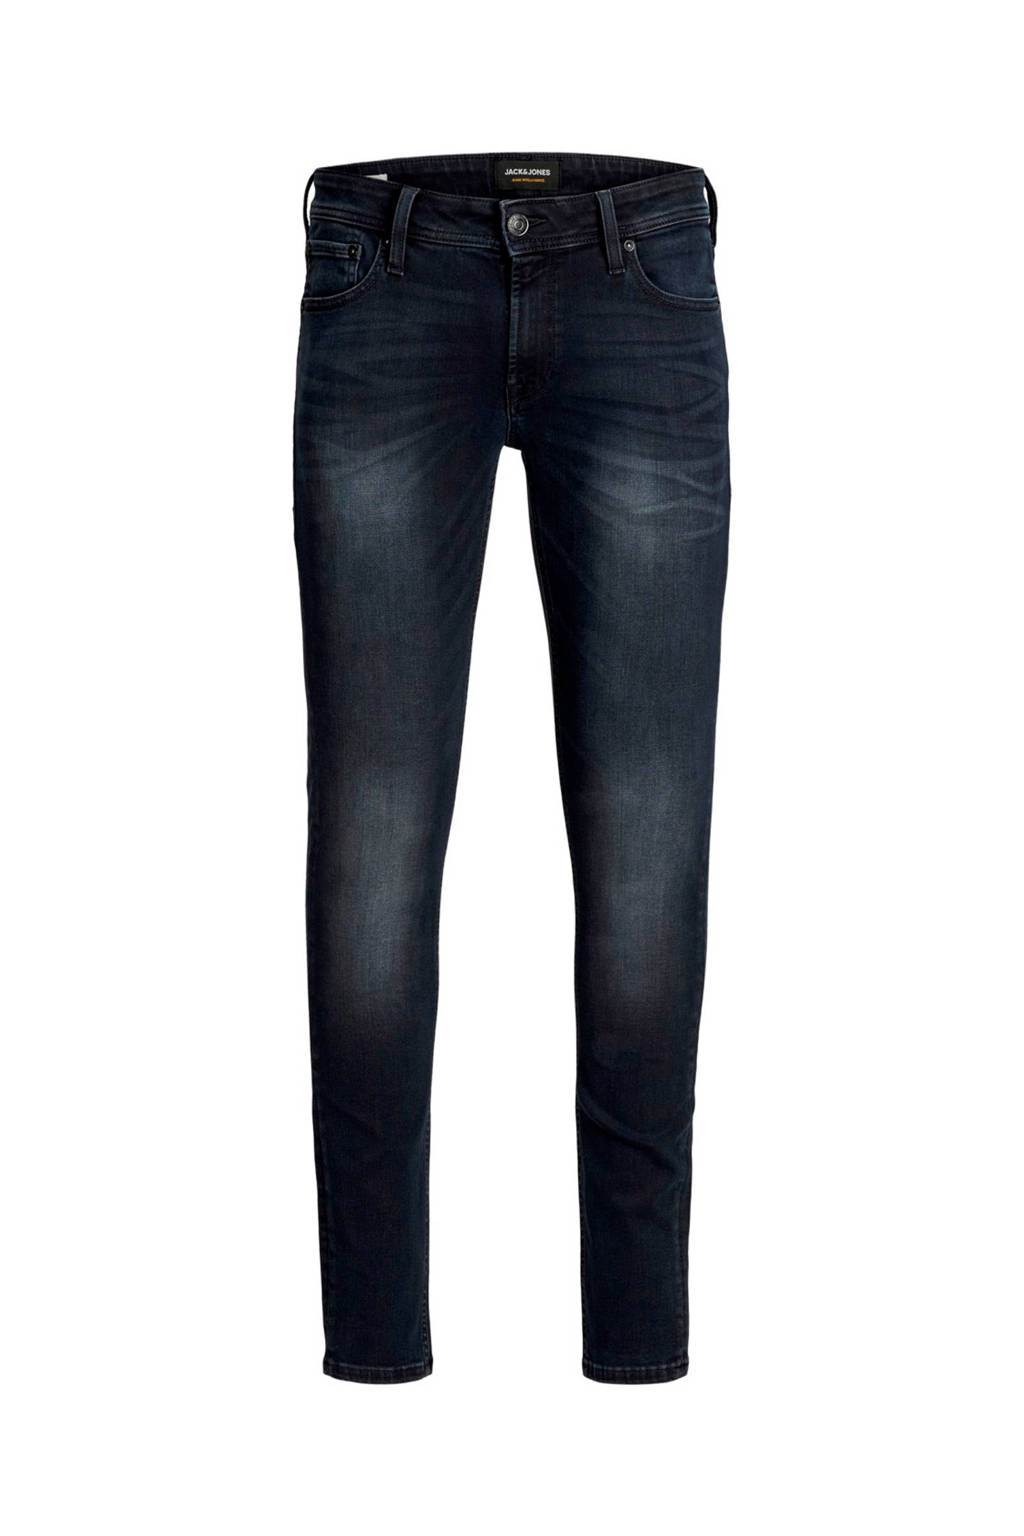 JACK & JONES JEANS INTELLIGENCE skinny fit jeans Liam dark denim, Dark denim